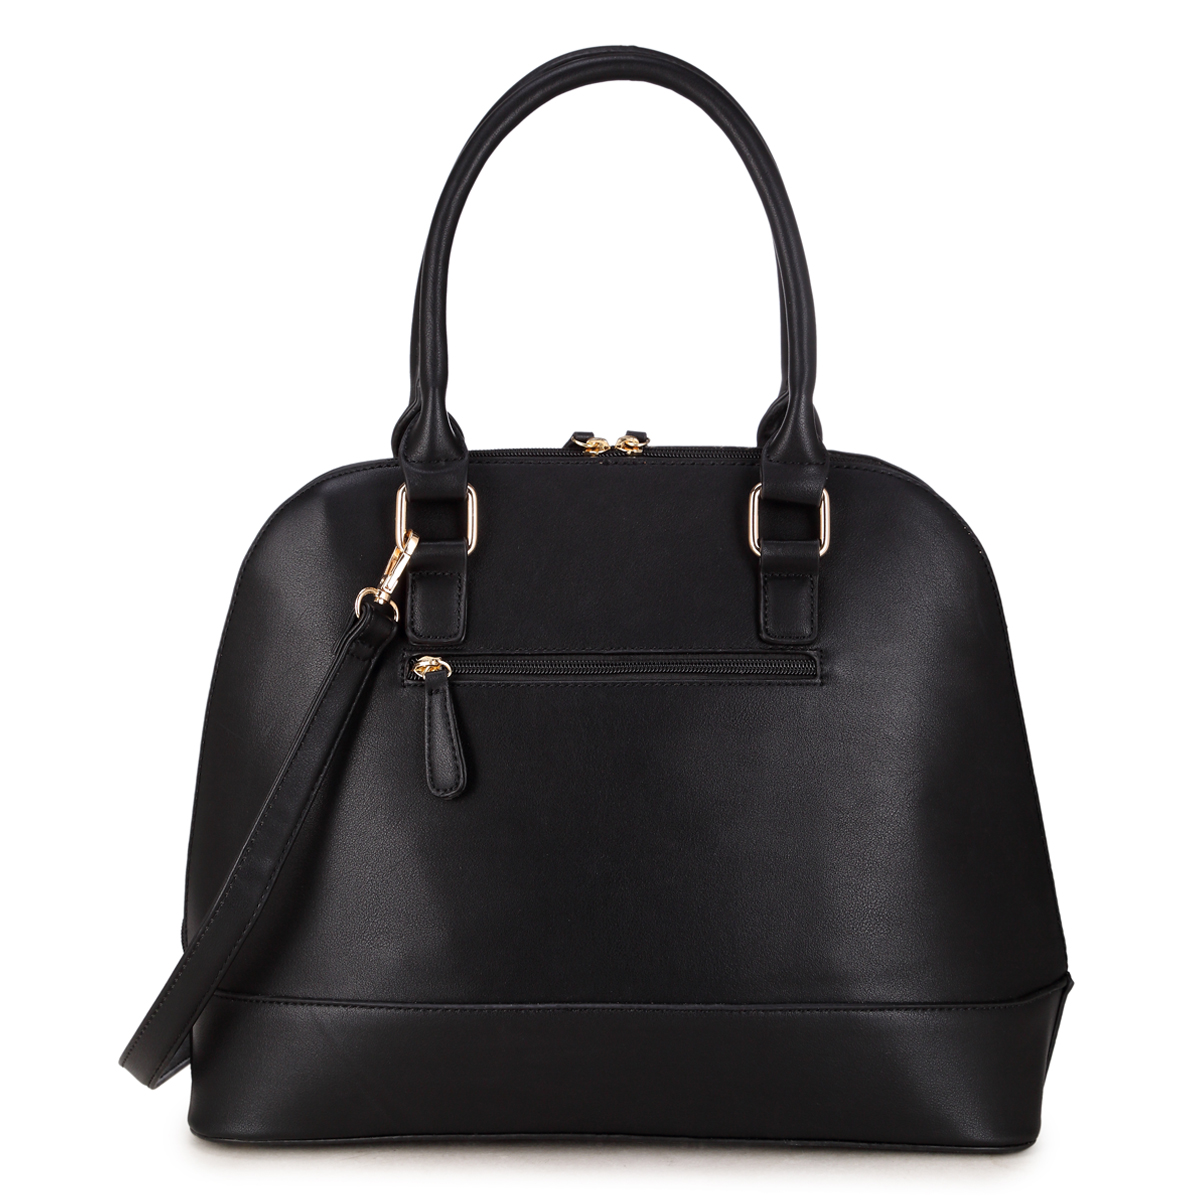 Dasein Round Leather Satchel with Semi Metallic Patch Design in Front